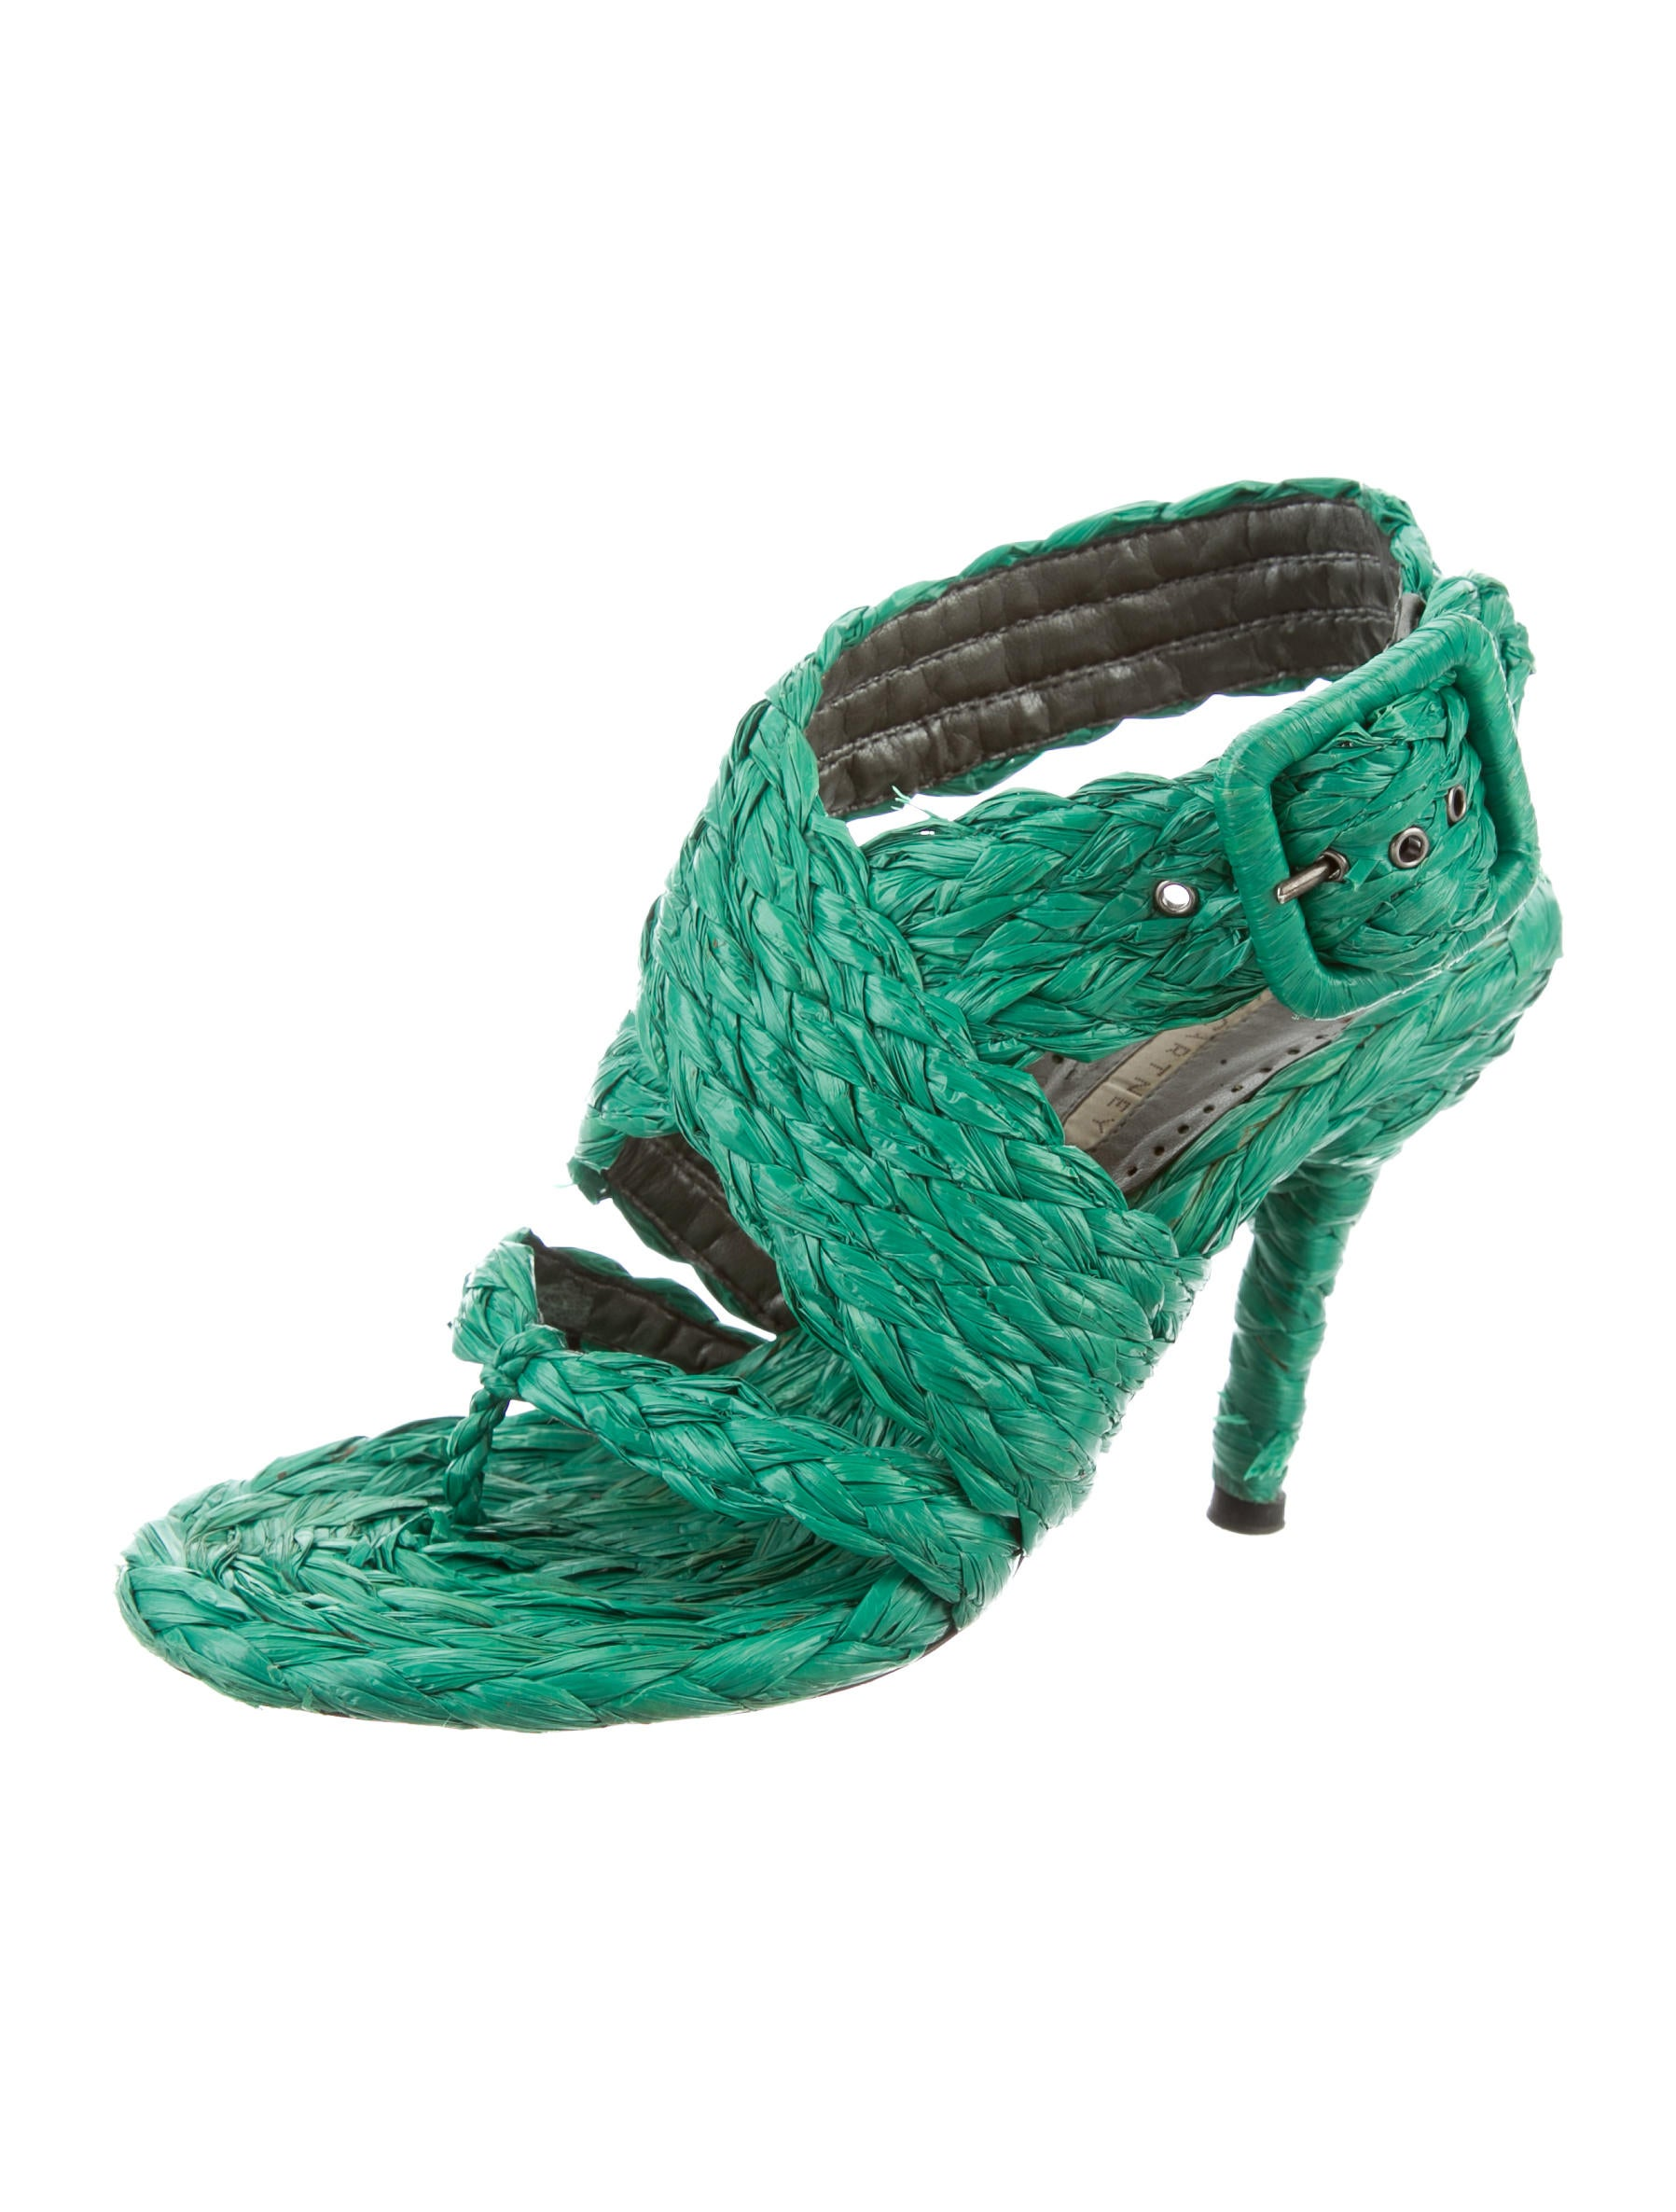 Stella McCartney Woven Straw Sandals sale supply clearance lowest price discount eastbay Manchester cheap online looking for cheap price tM3I1xsO